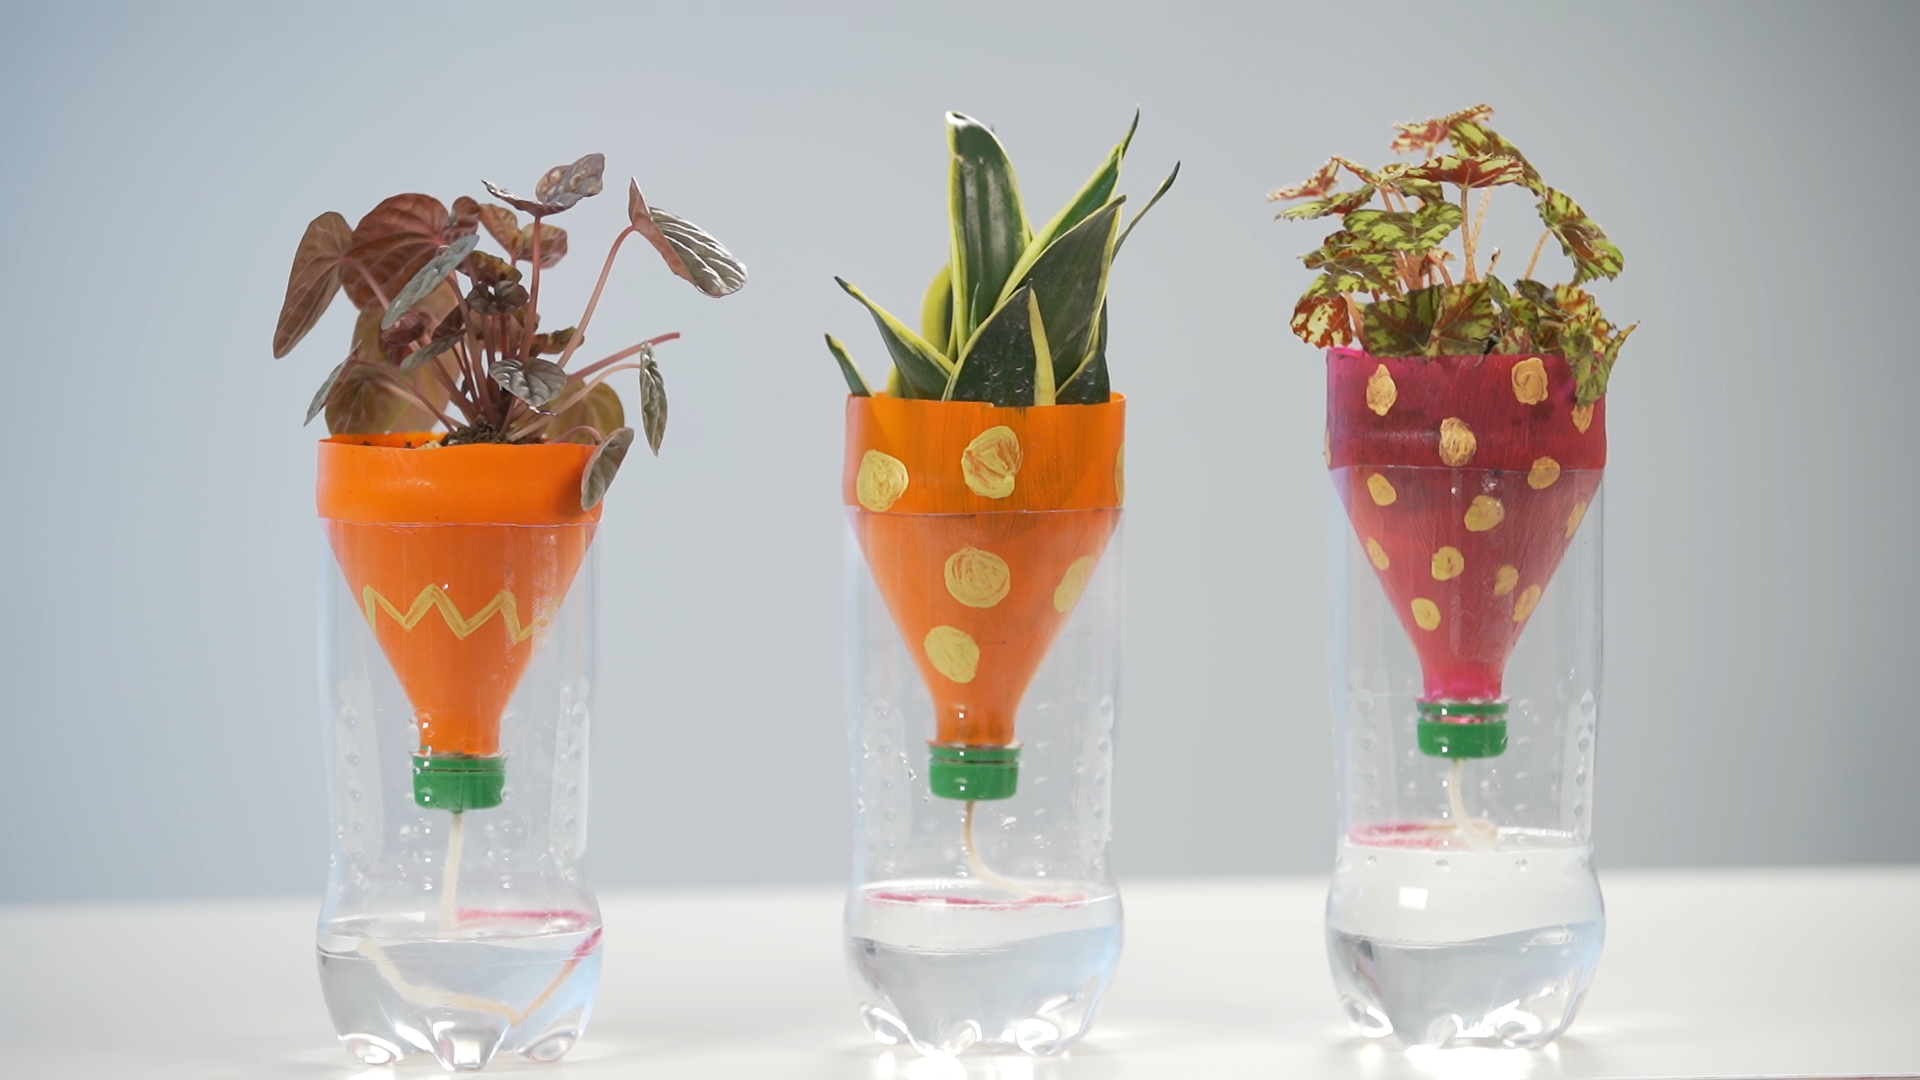 Self-watering planter workshop with used plastic bottles at Clean and Green Singapore 2020